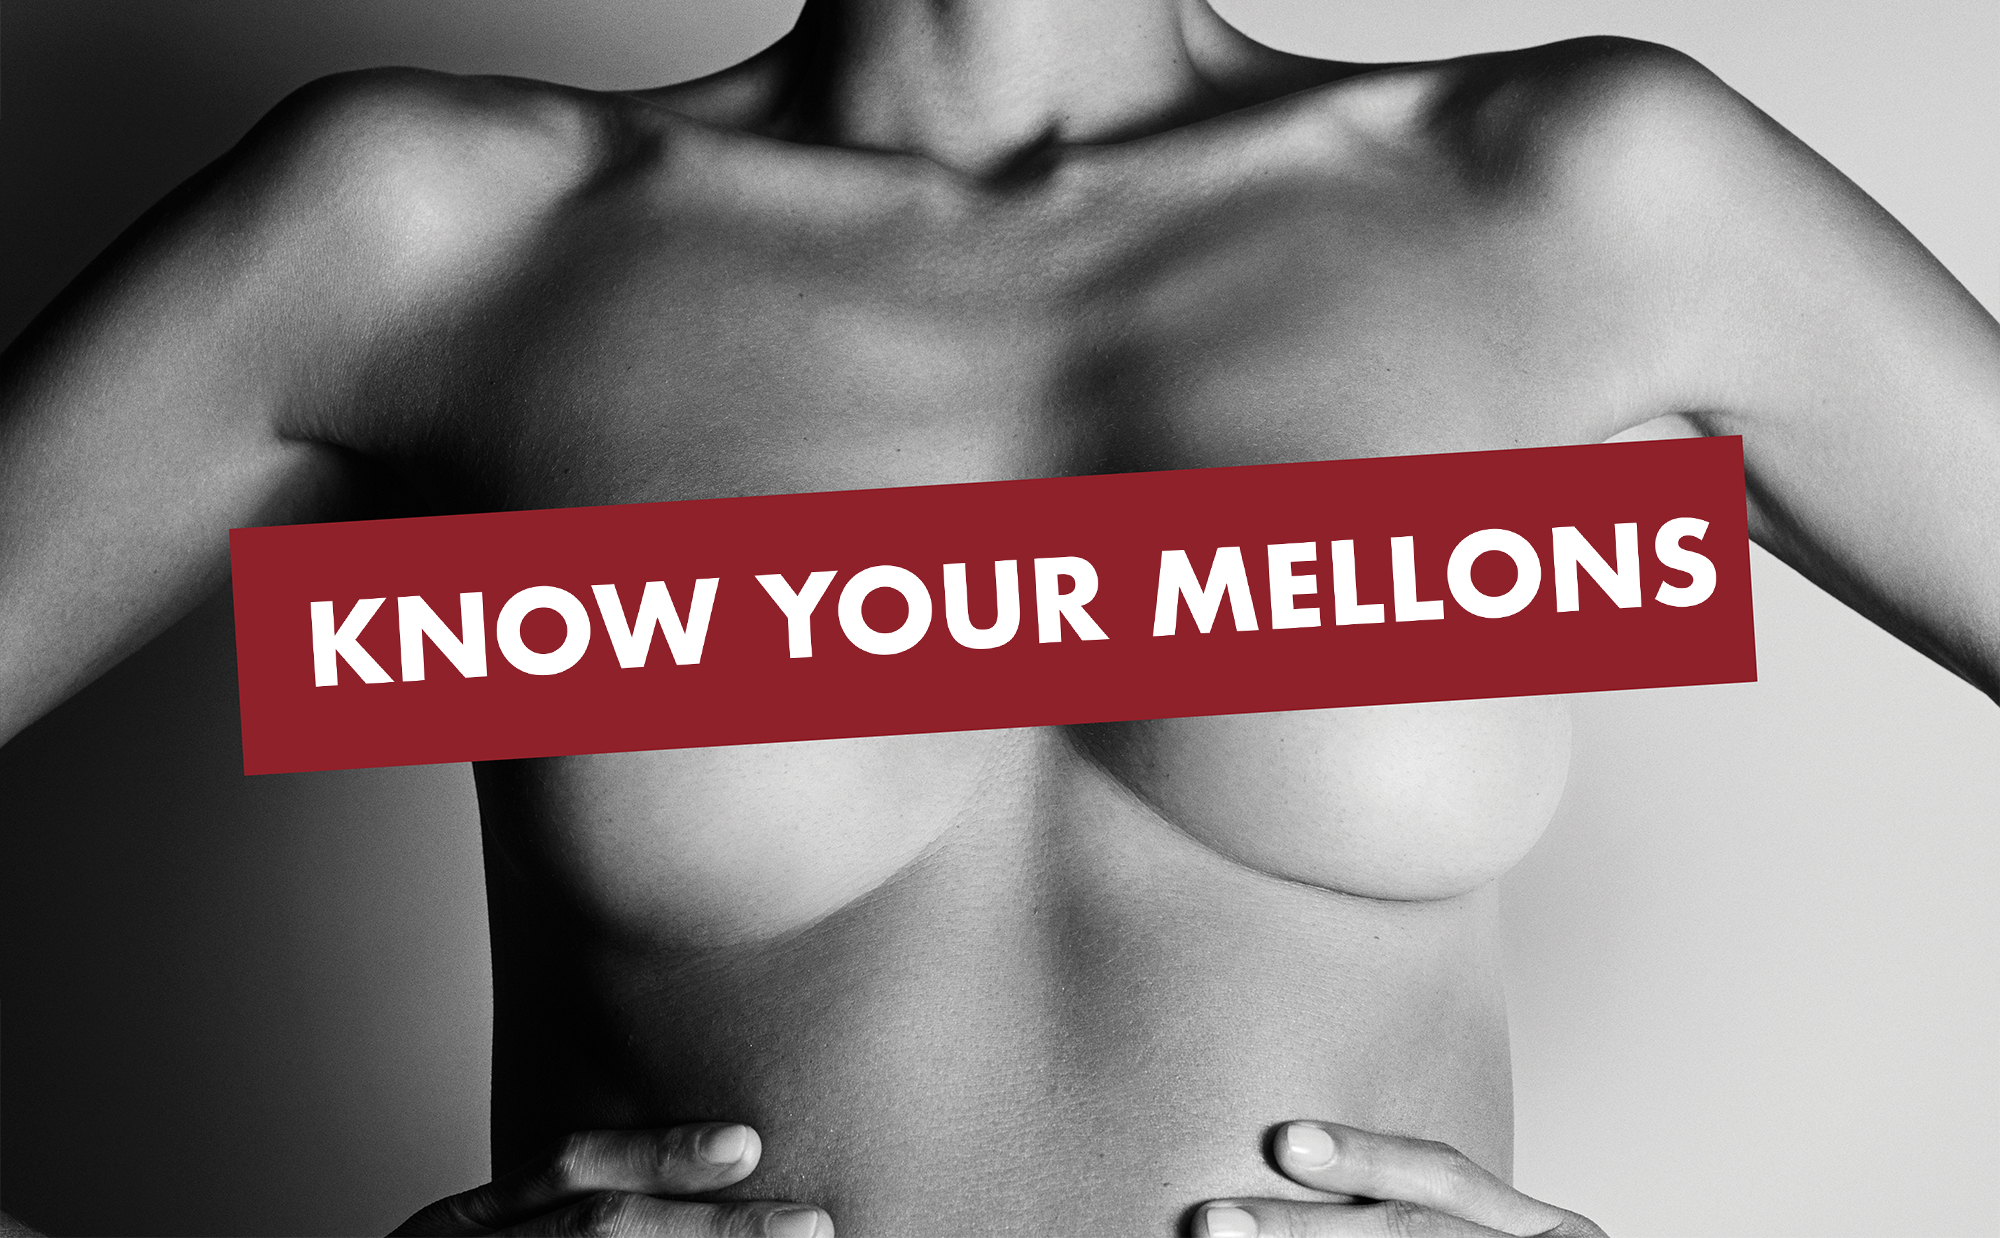 Know Your Mellons - Campaign Image.jpg